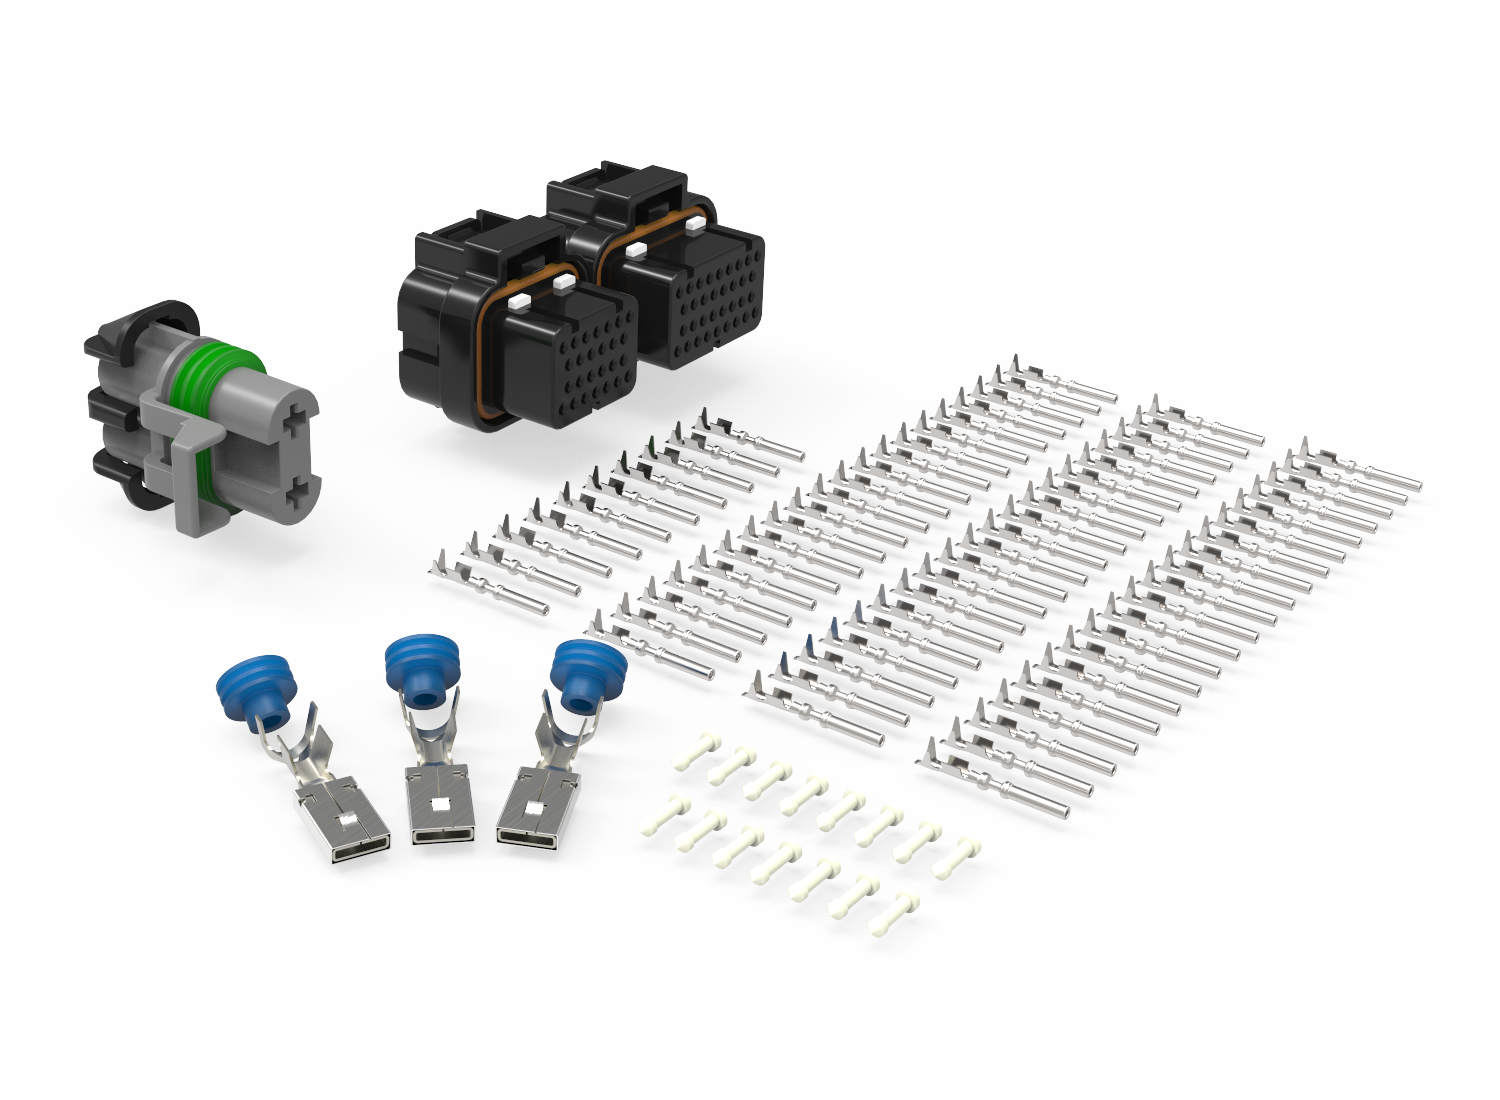 Ecu Connector Kit For Holley Efi Hp Connection Llc Ford Wiring Terminal Parts To Build Your Own Assemblies